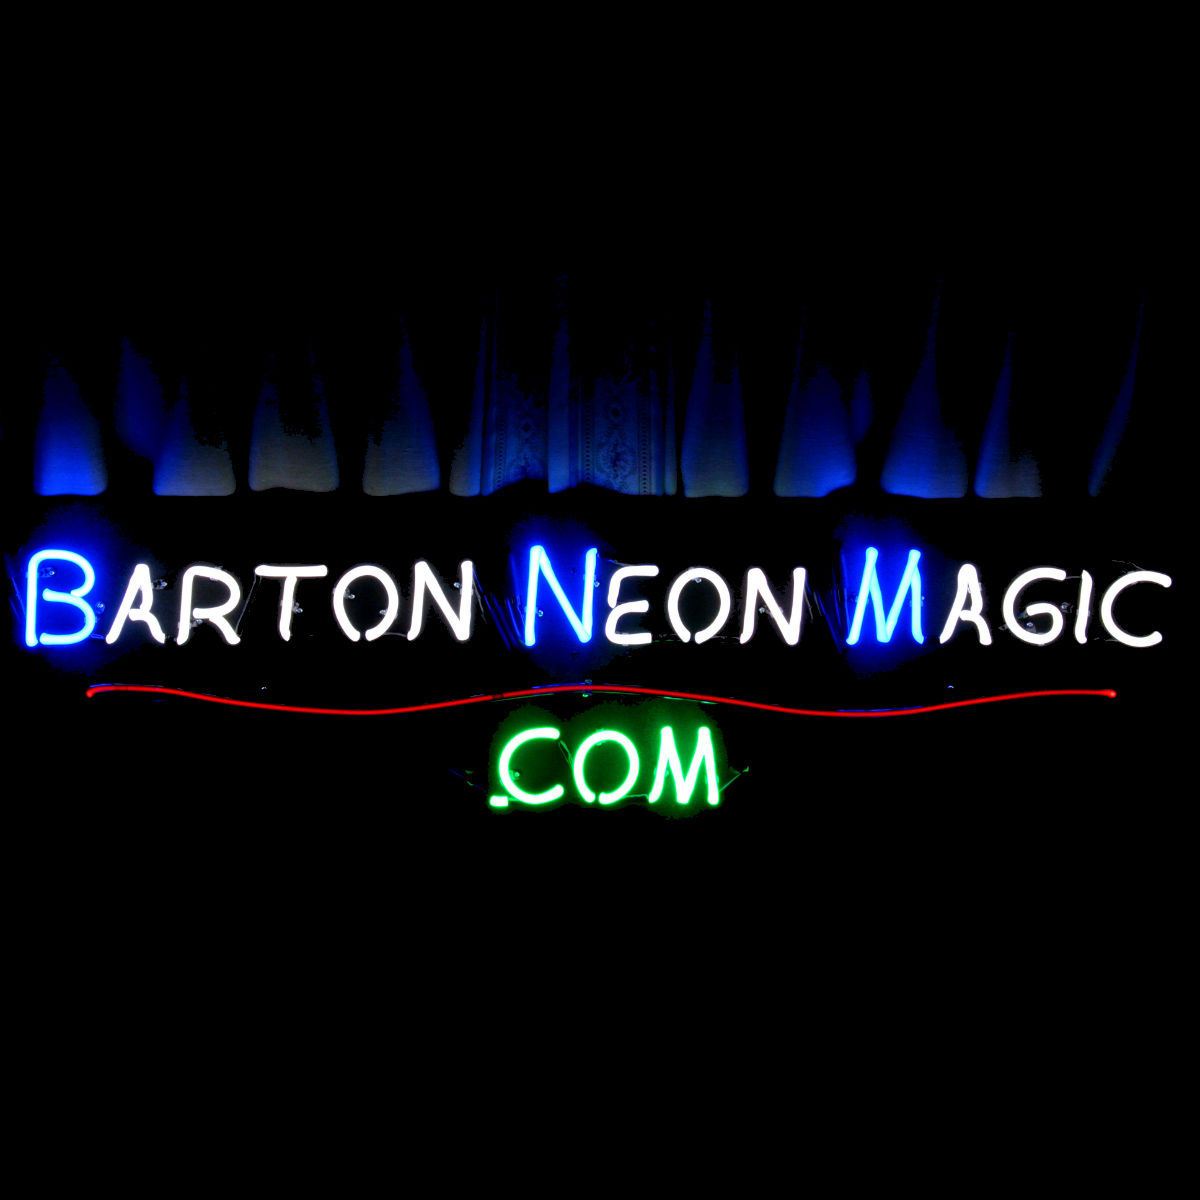 Custom Hand-blown Neon Light Artworks by John Barton - BartonNeonMagic.com